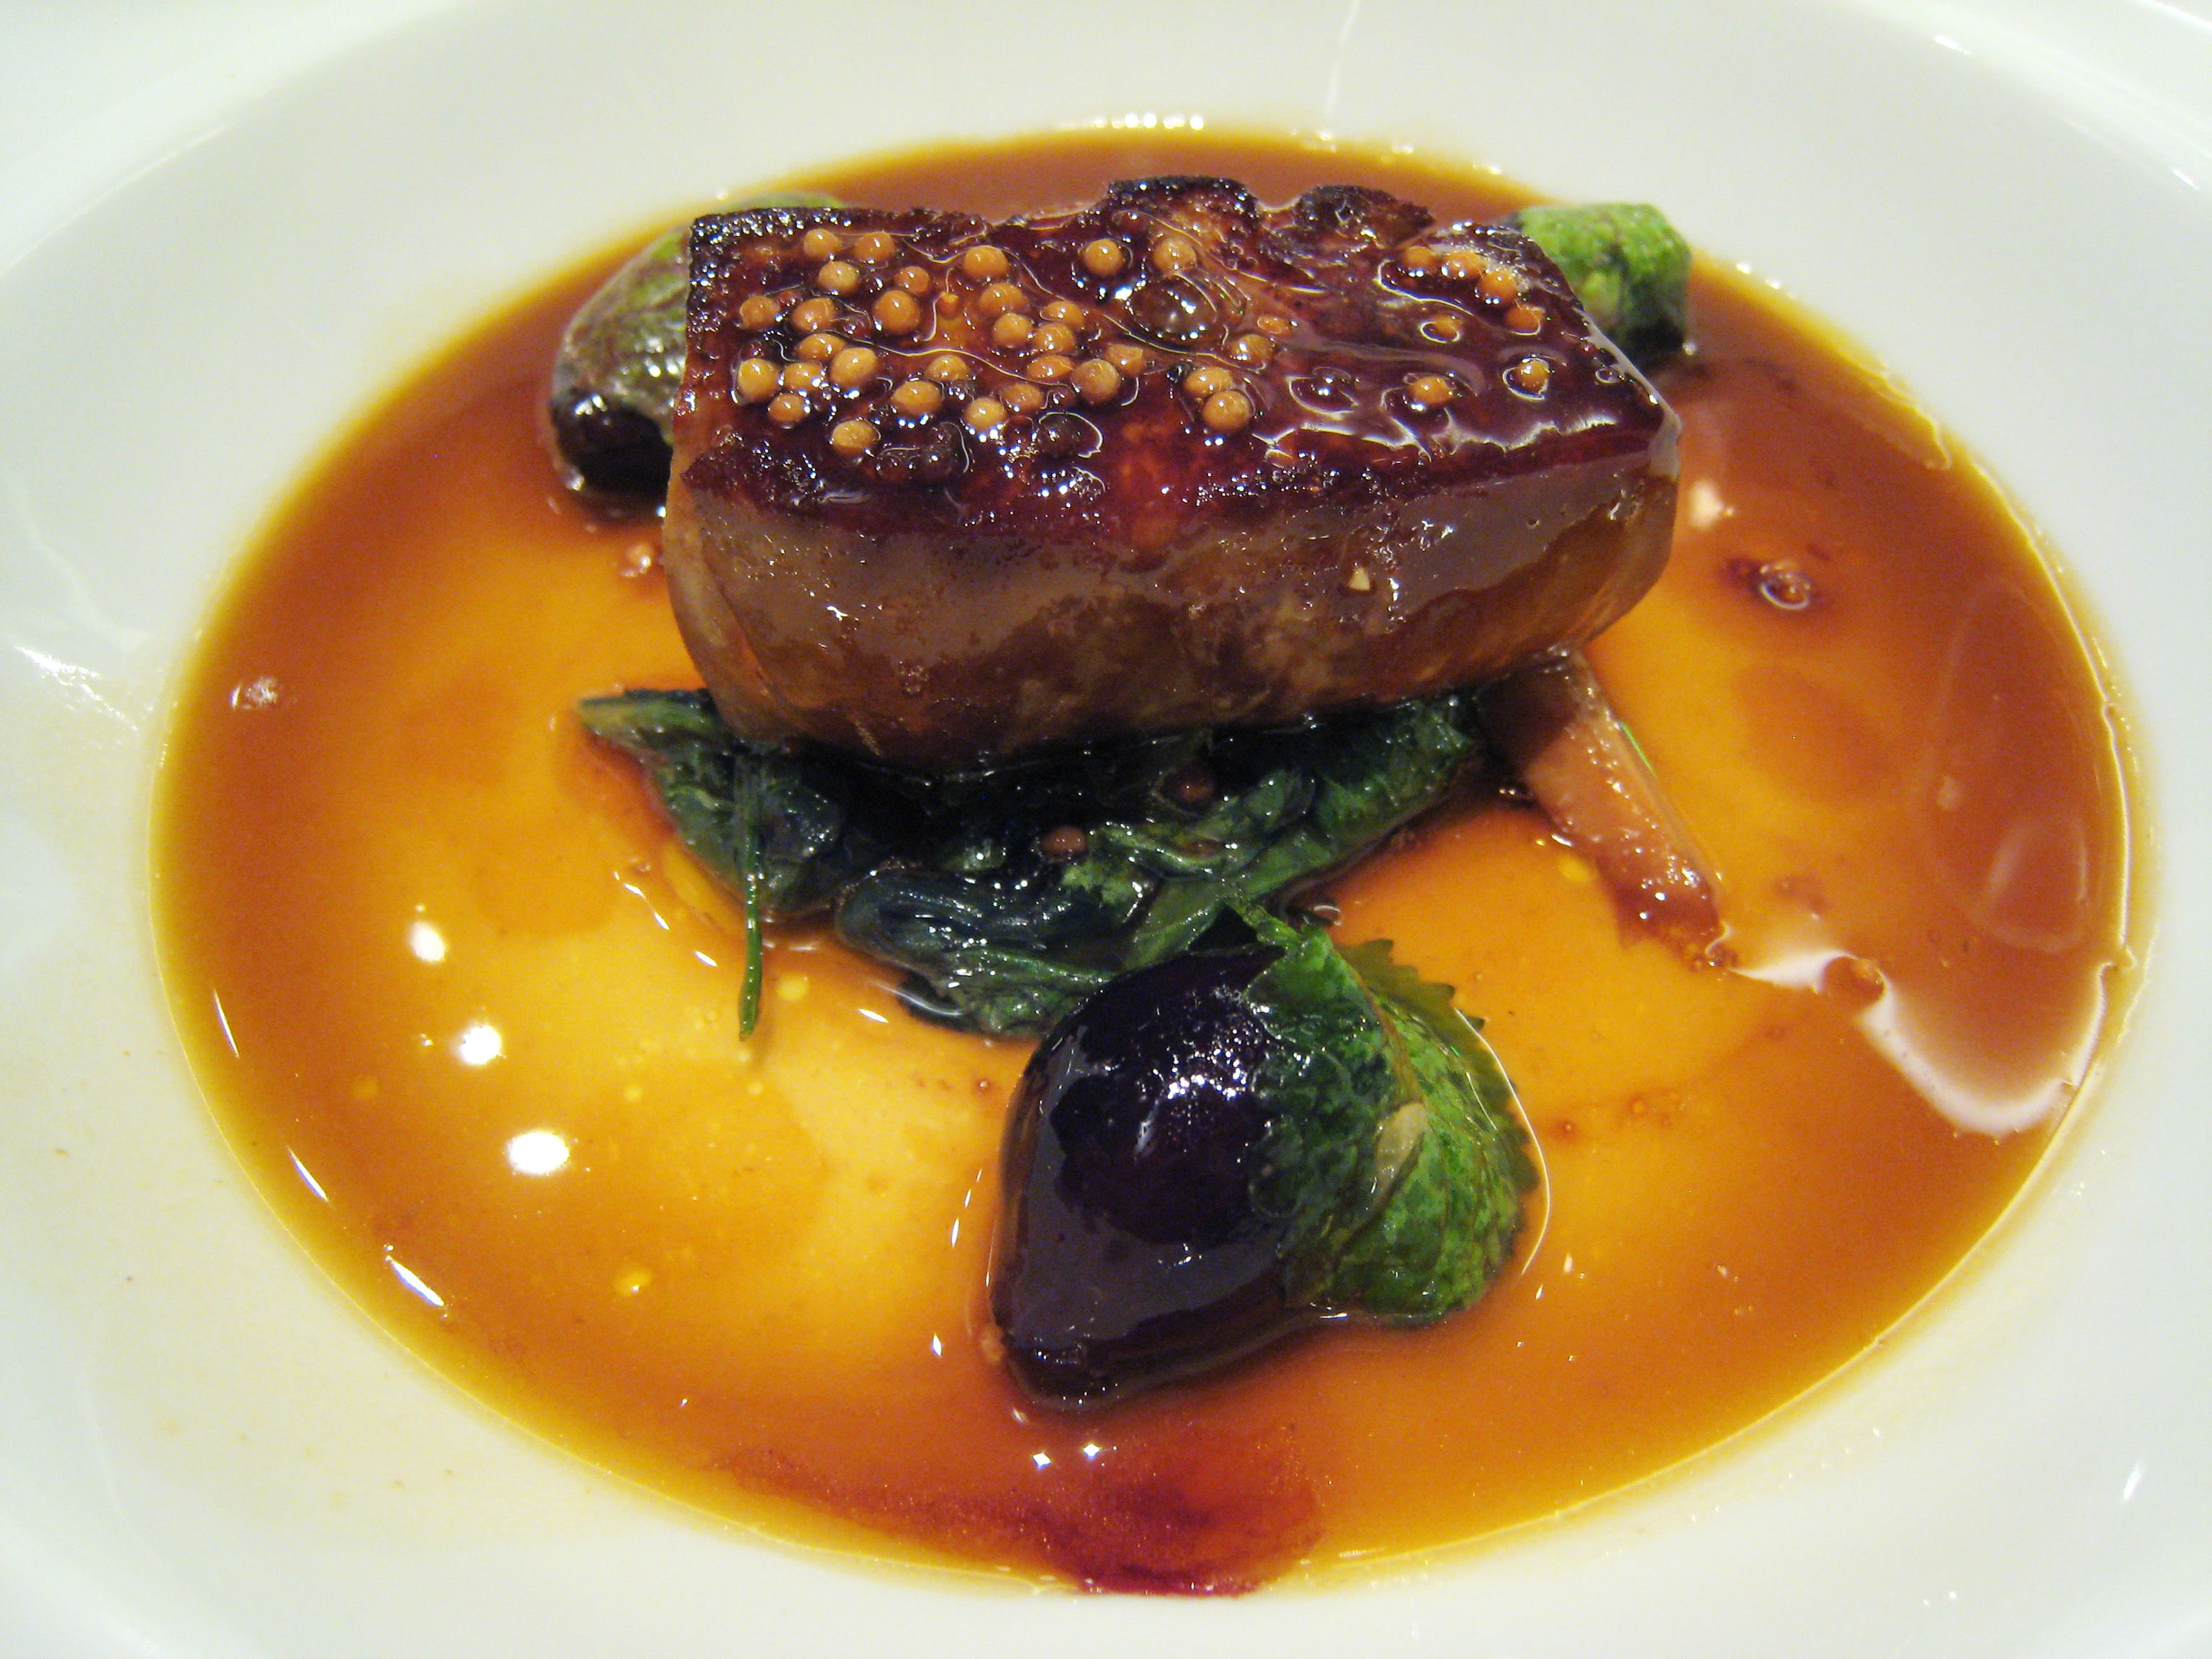 A platter of foie gras. In a big win for animal rights, California's ban on foie gras was recently reinstated.